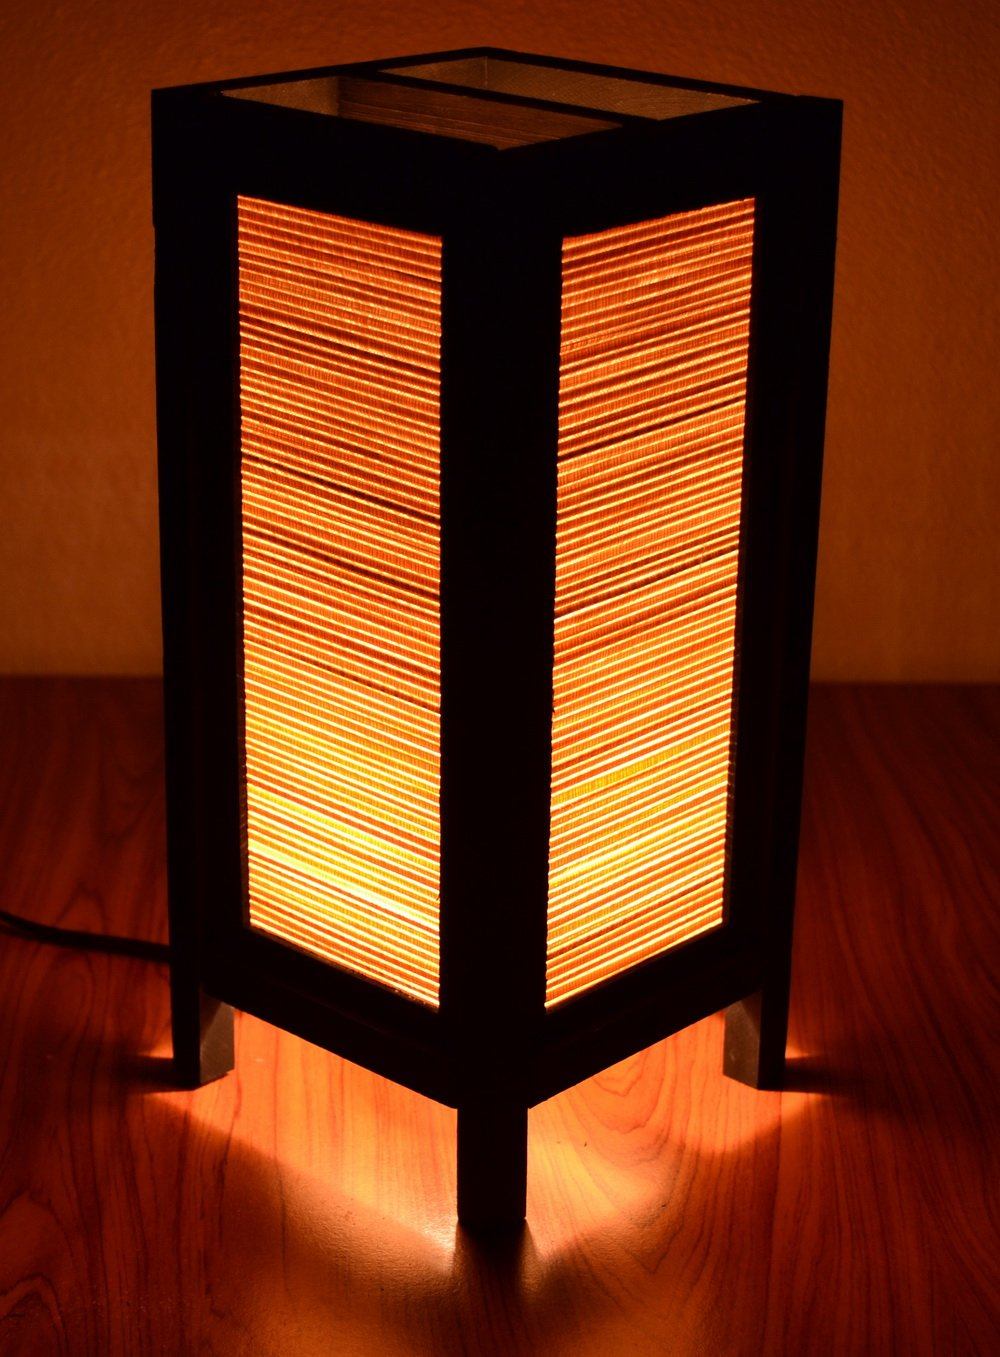 Decorative Lamp Thai Vintage Handmade Asian Oriental Original Bamboo Blind  Bedside Table Light Floor Wood Paper Lamp Shades Home Bedroom Garden  Decoration ...